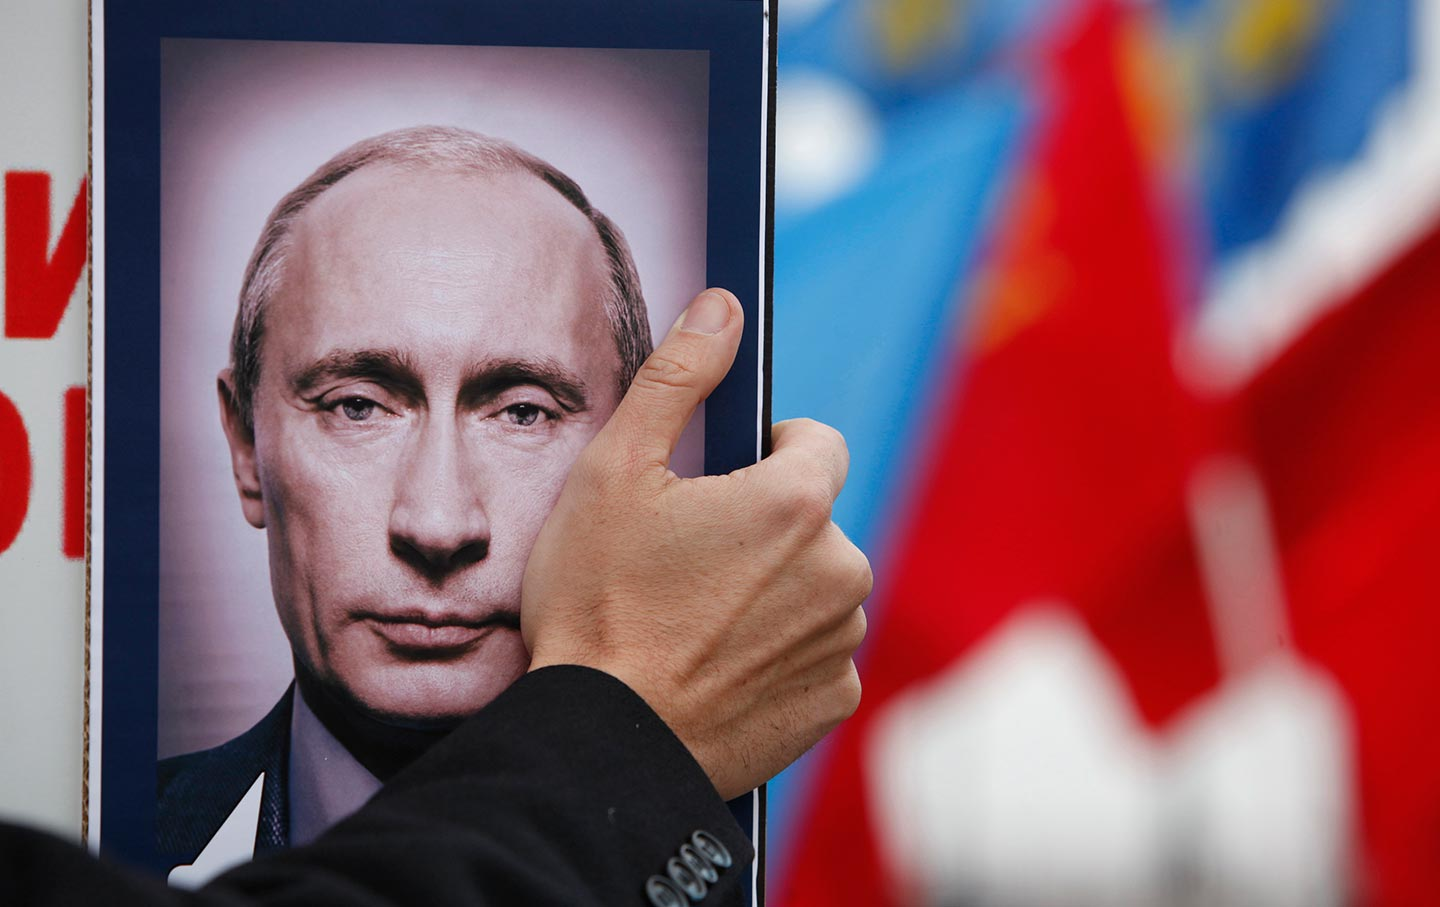 Anti-Putin Protest Portrait